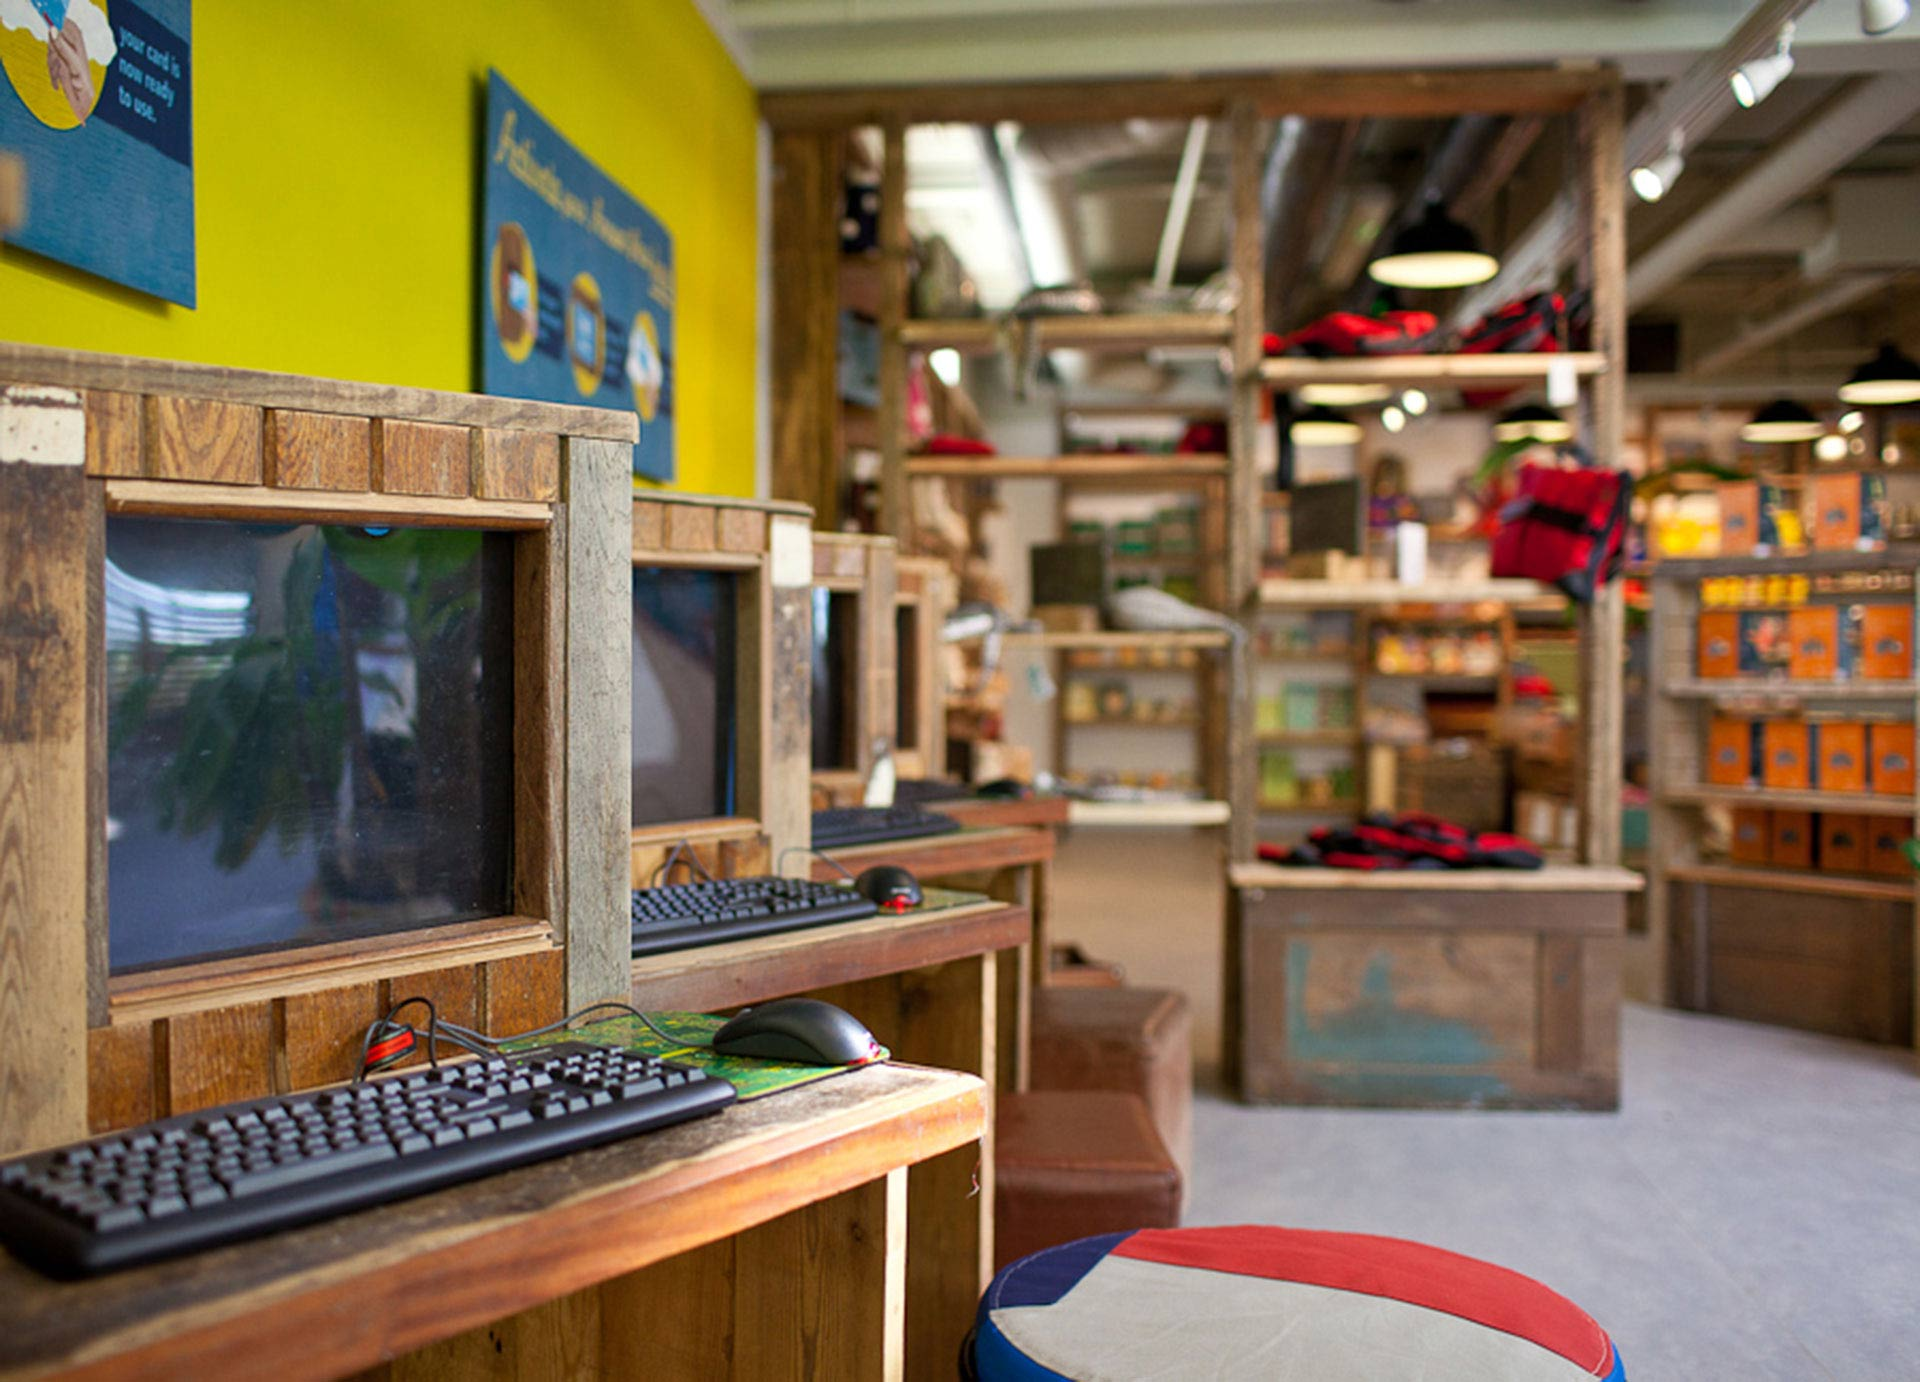 Computer display fitted within reclaimed unit at Eden Project